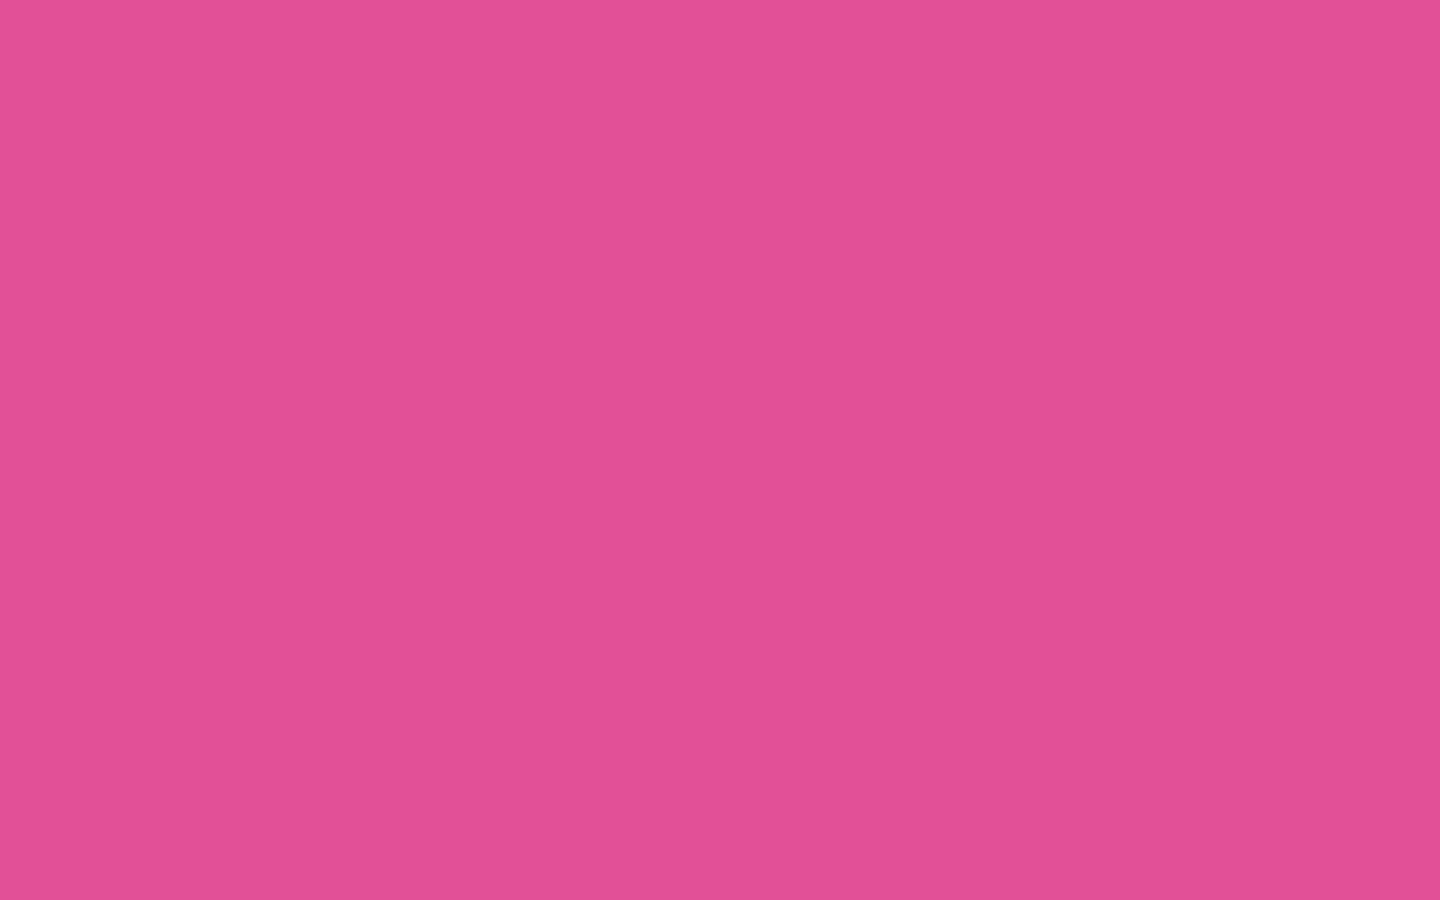 1440x900 Raspberry Pink Solid Color Background